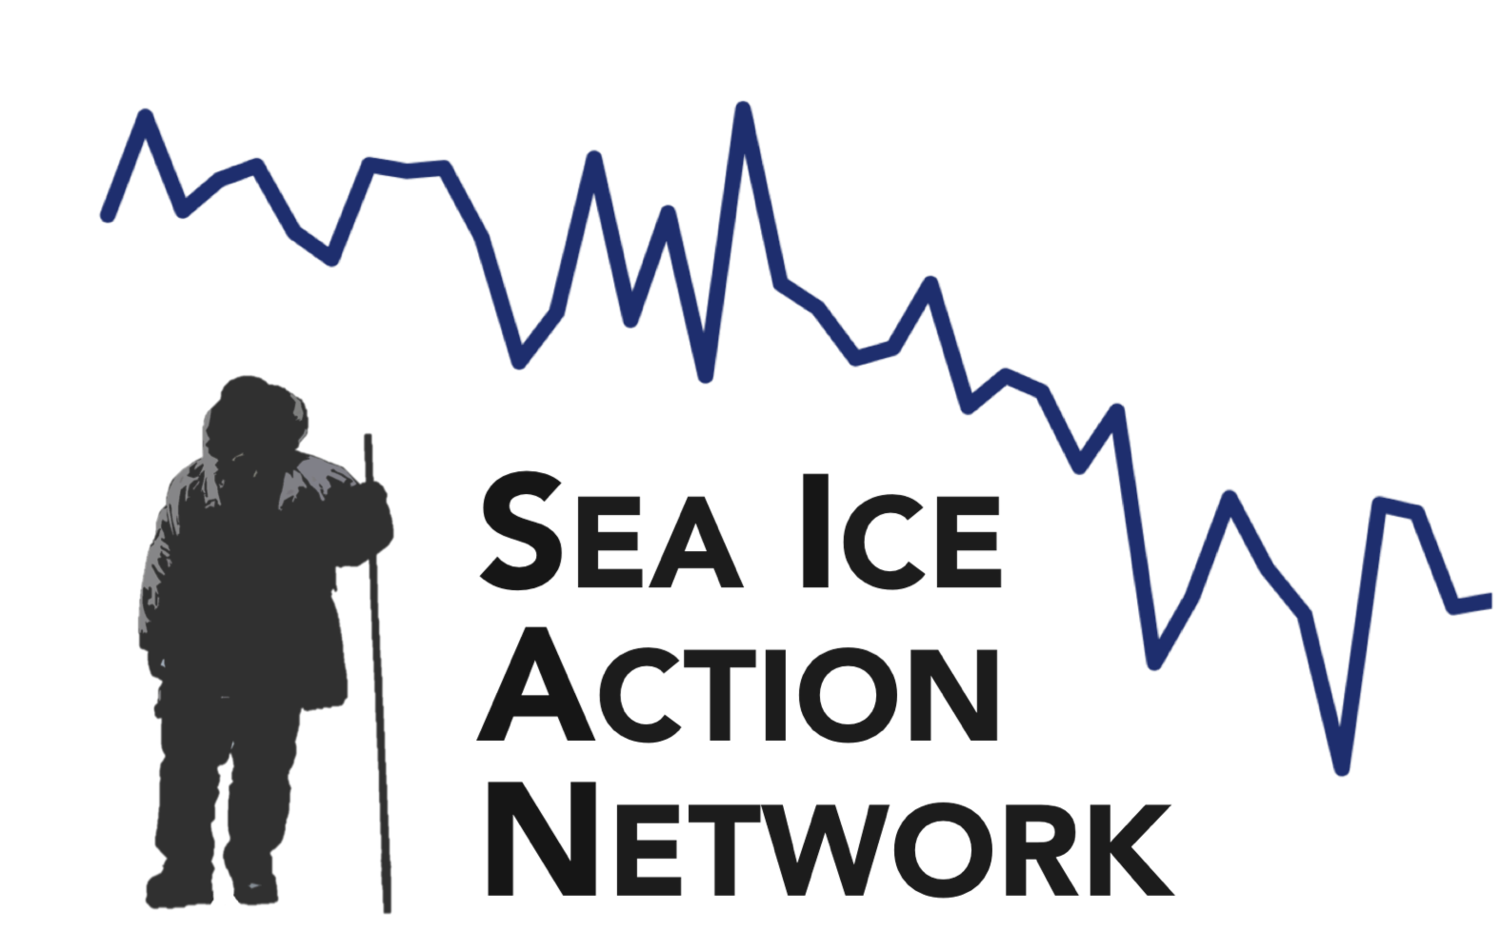 SEARCH Sea Ice Action Network